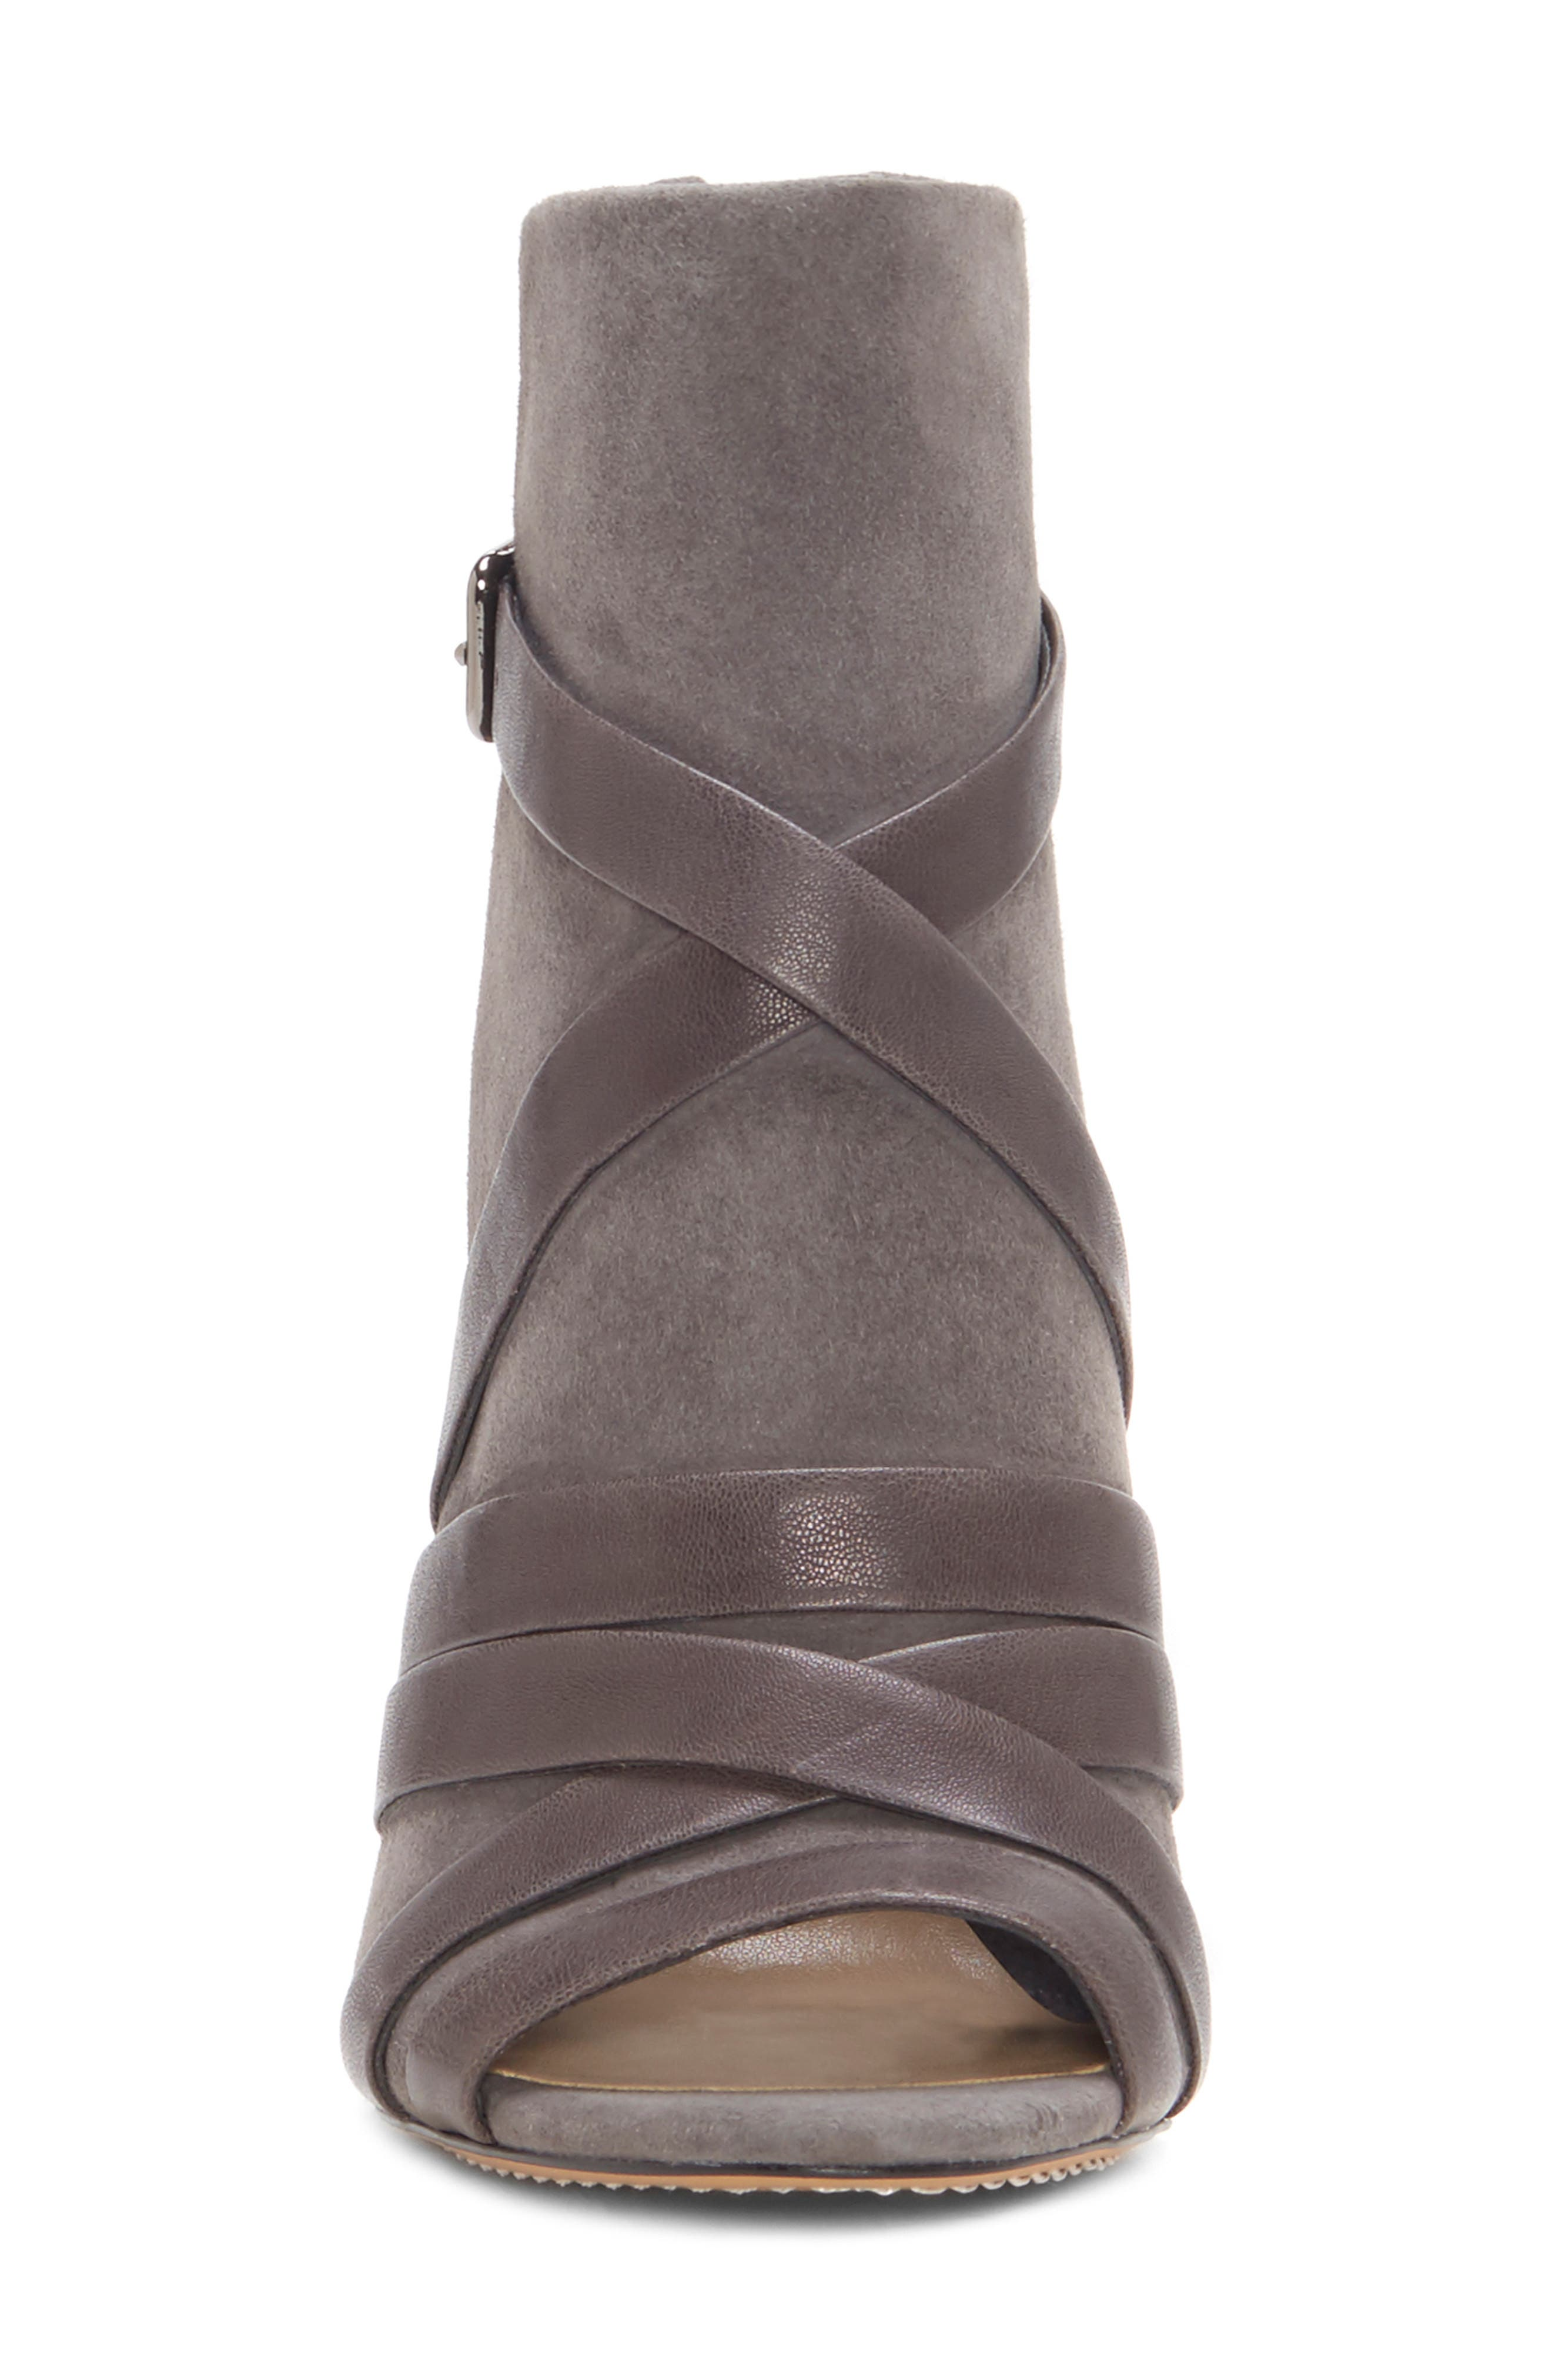 Achika Belted Peep Toe Bootie,                             Alternate thumbnail 4, color,                             POWER GREY LEATHER